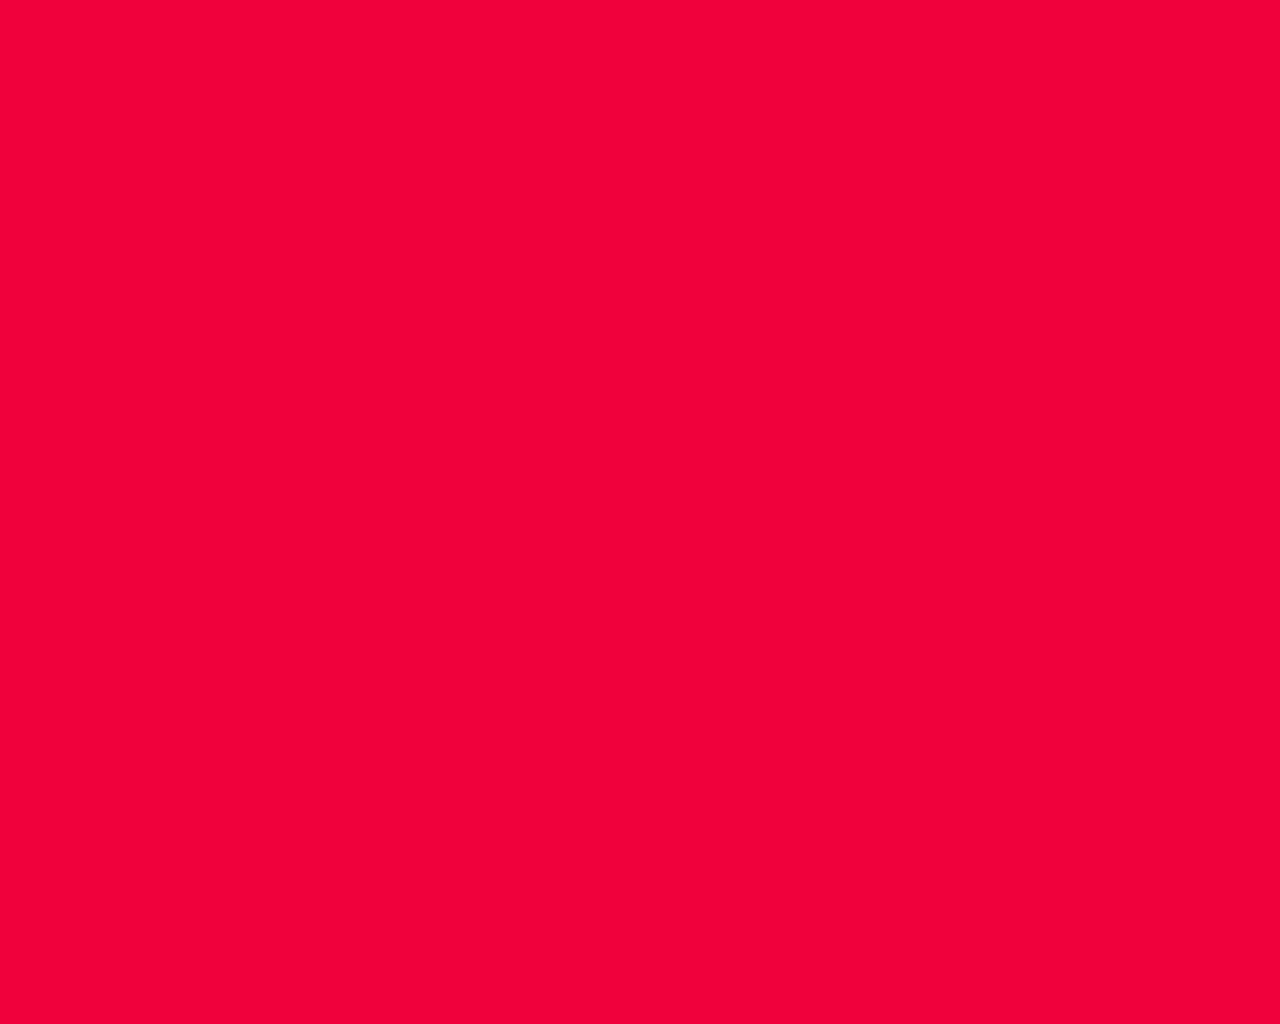 1280x1024 Red Munsell Solid Color Background